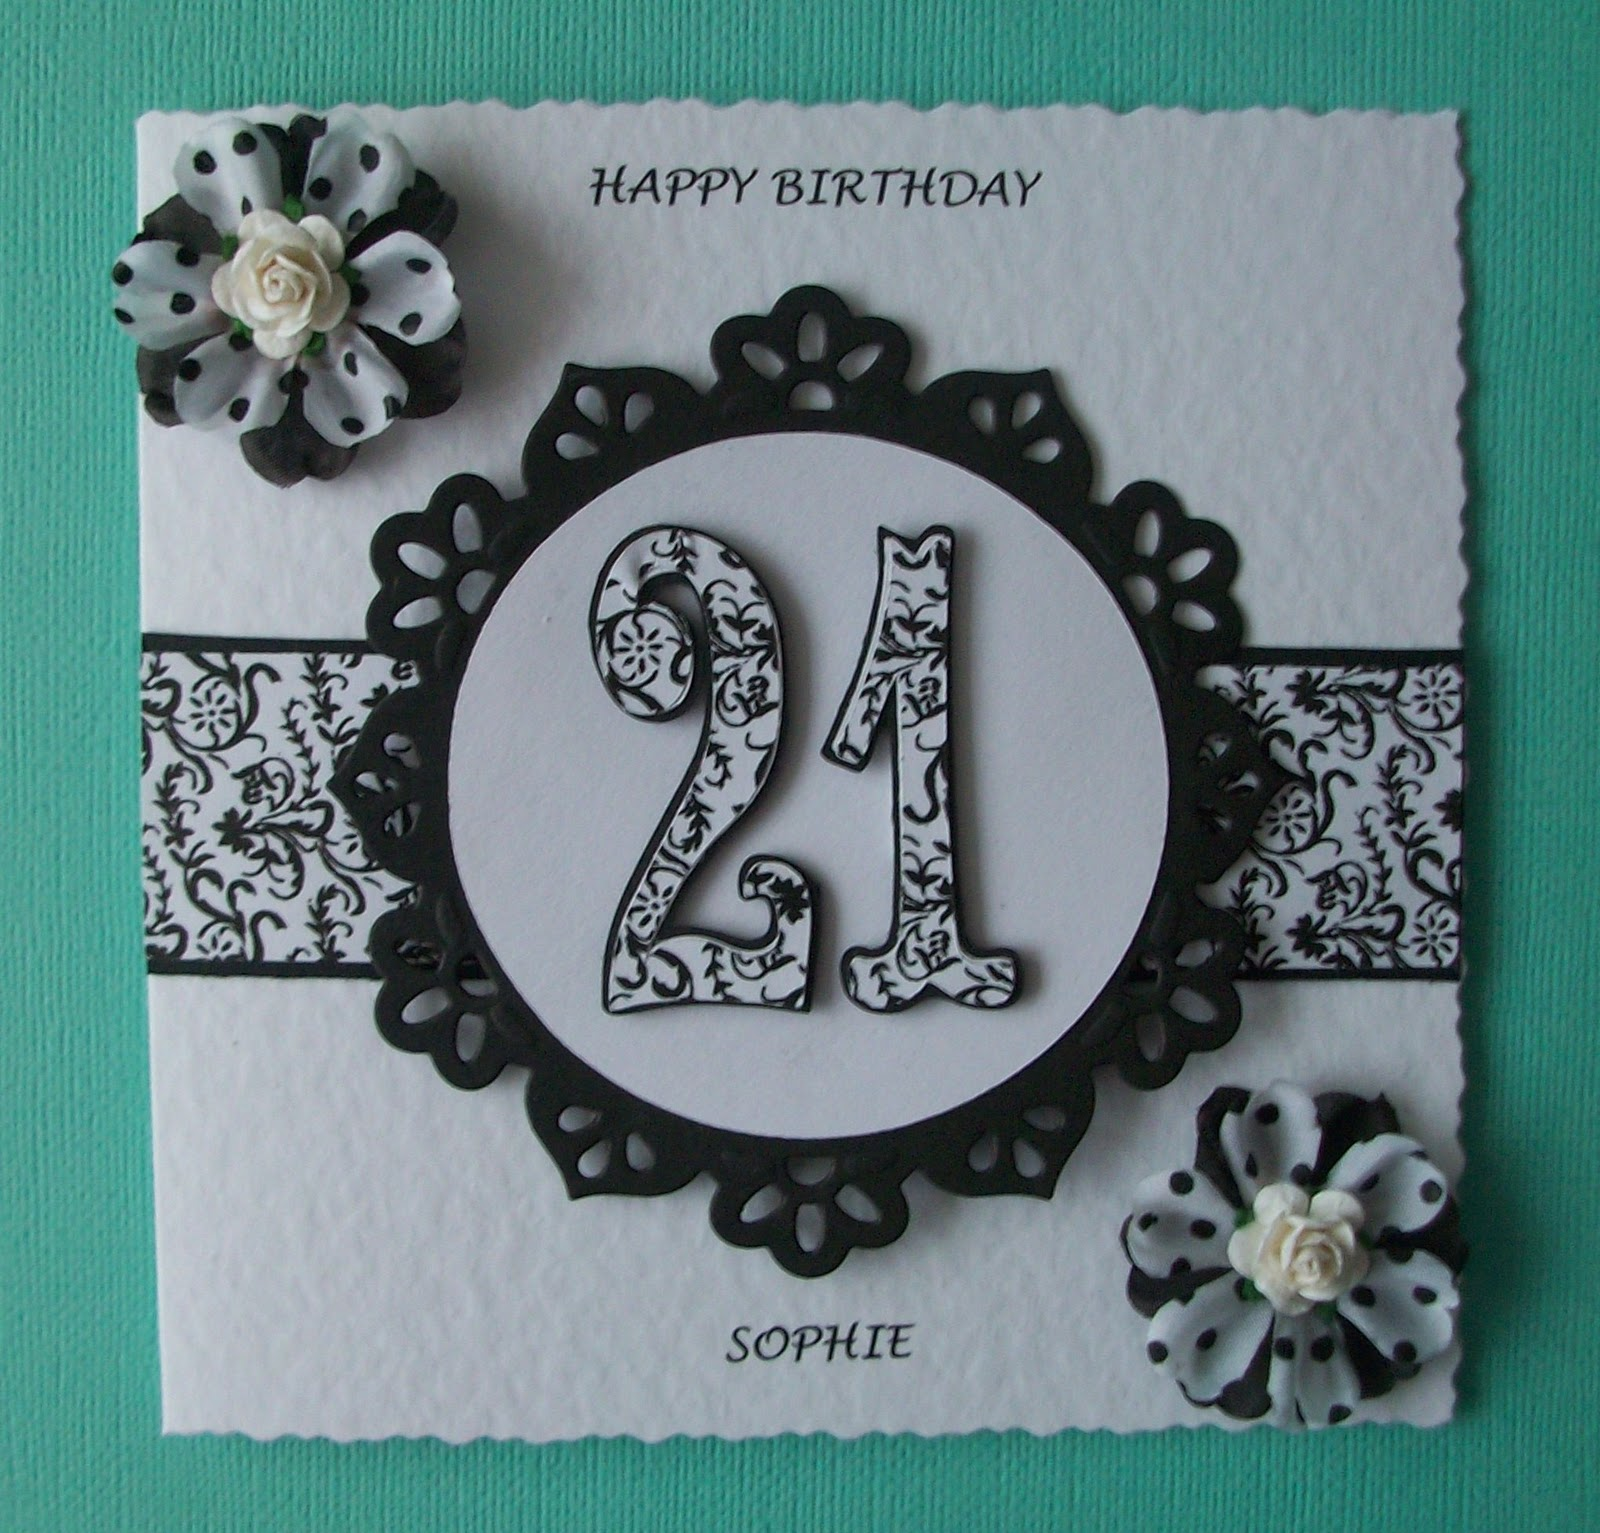 Card Making Ideas 21st Birthday Part - 43: 21st Birthday Card